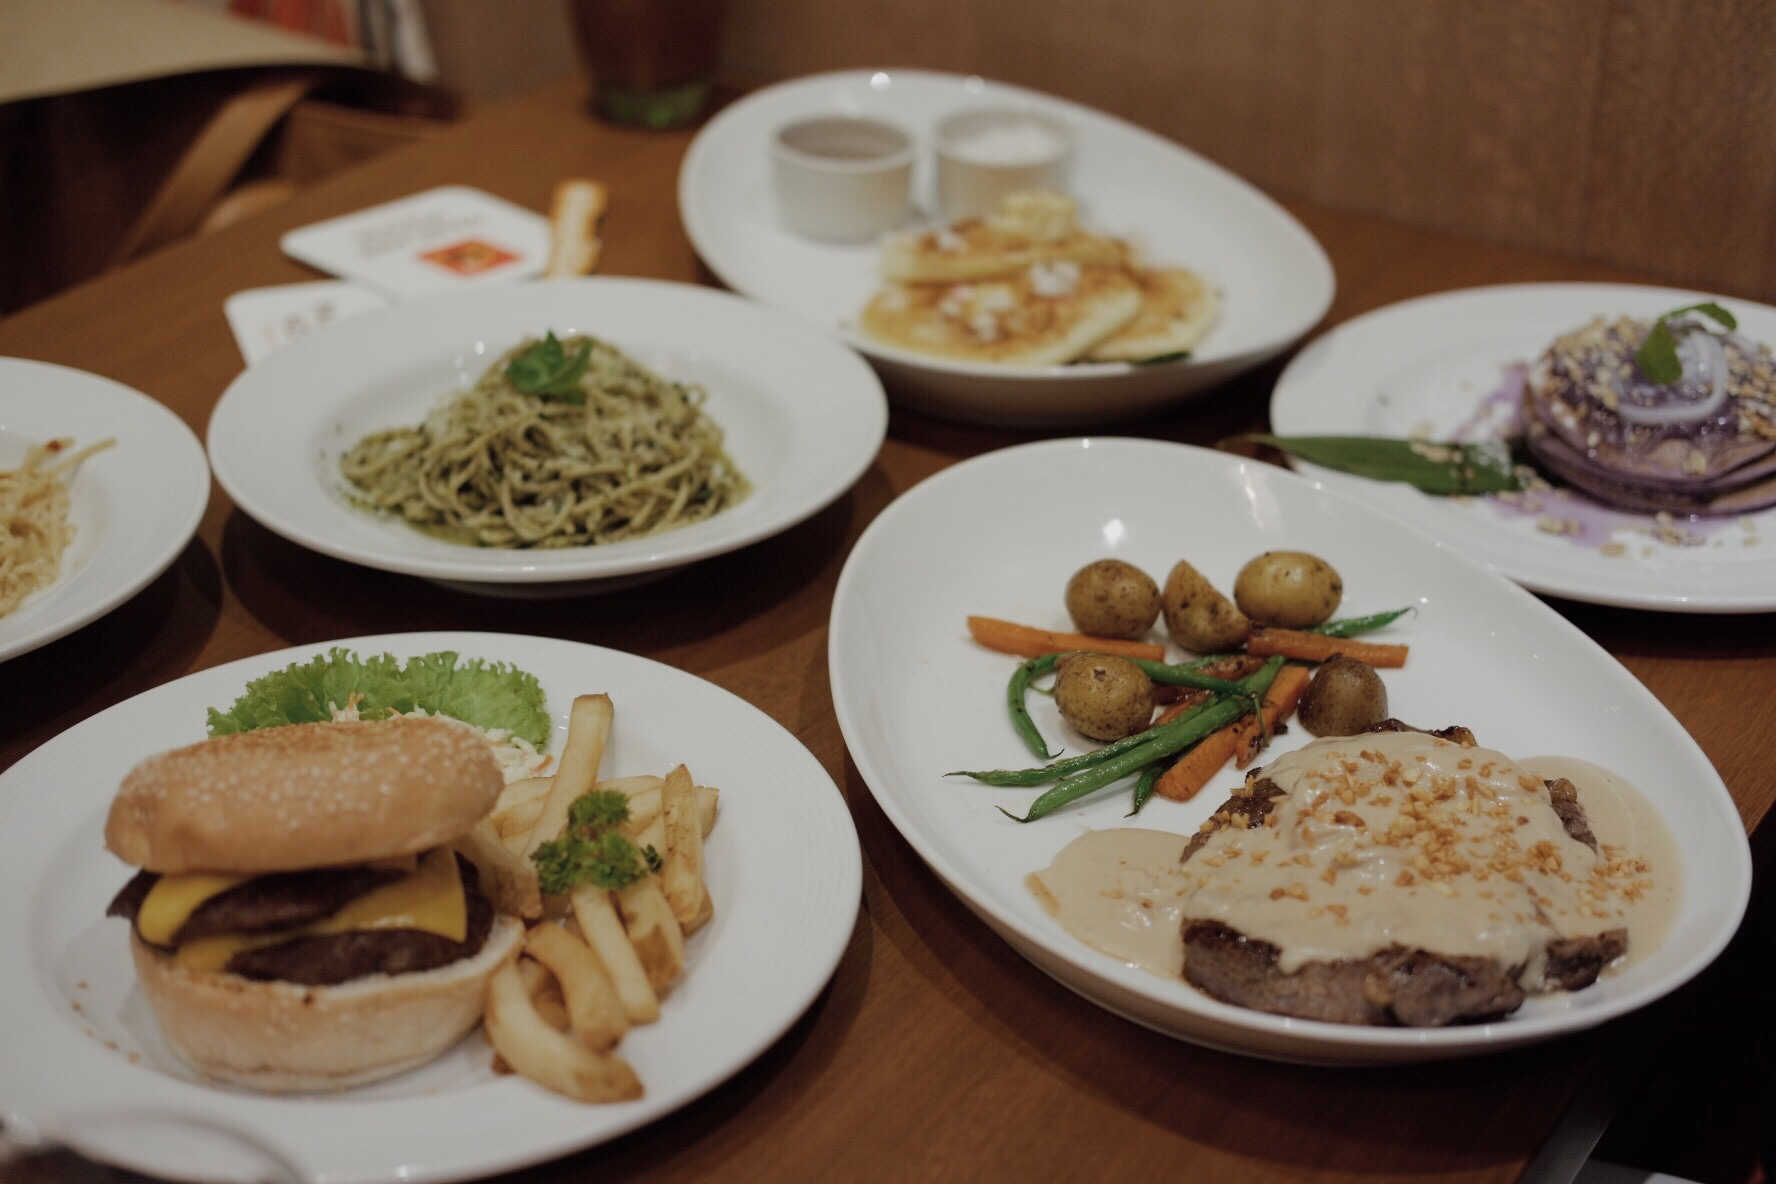 Where to Grab Your Next Hearty Meal? Try Pancake House